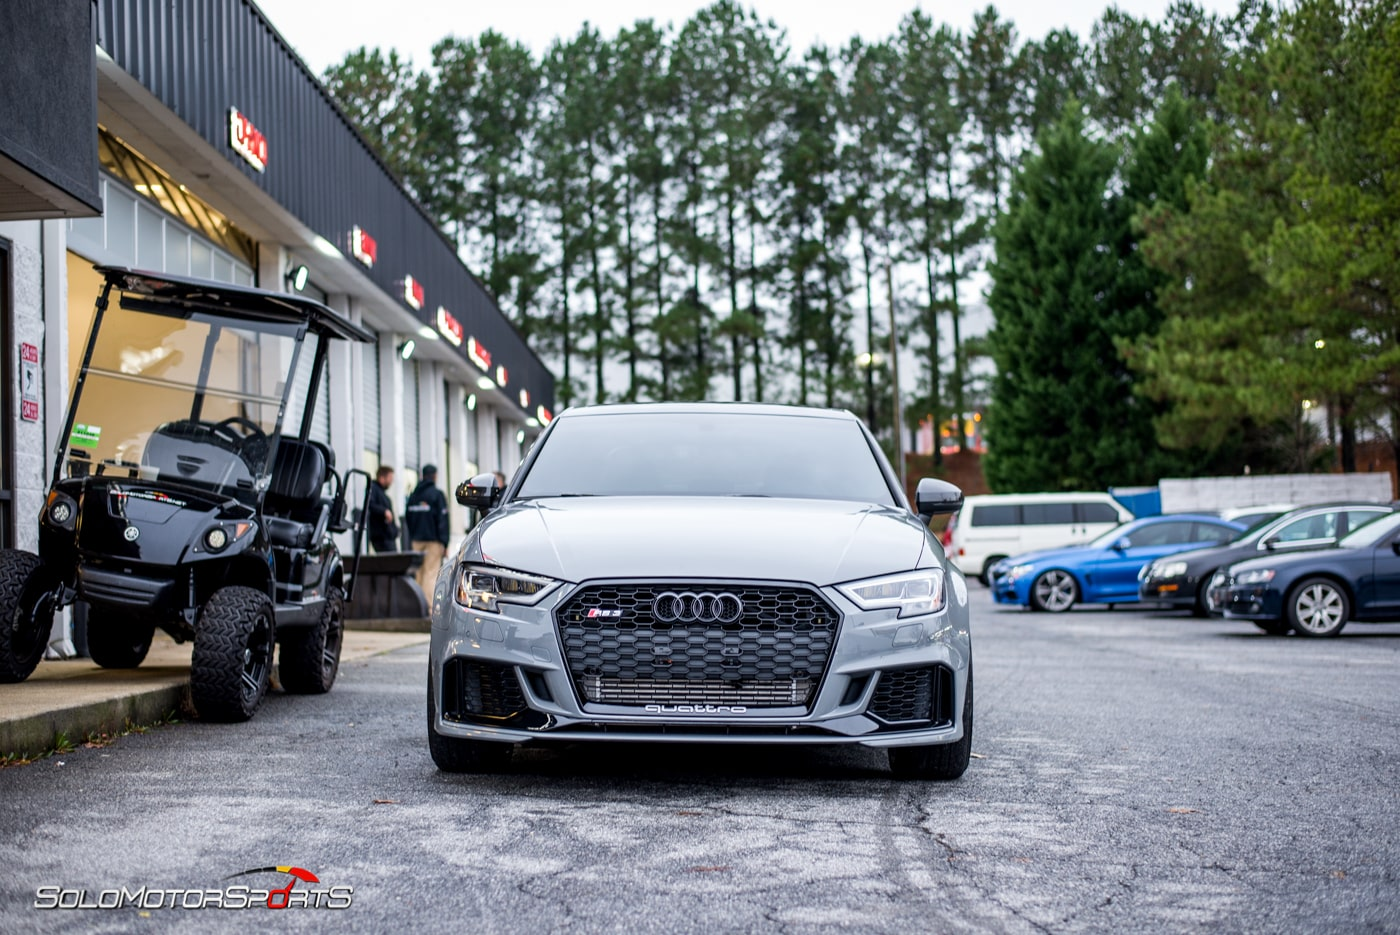 4 Rings To Rule Them All Audi Rs3 Pt Ii The Tuning Solomotorsports